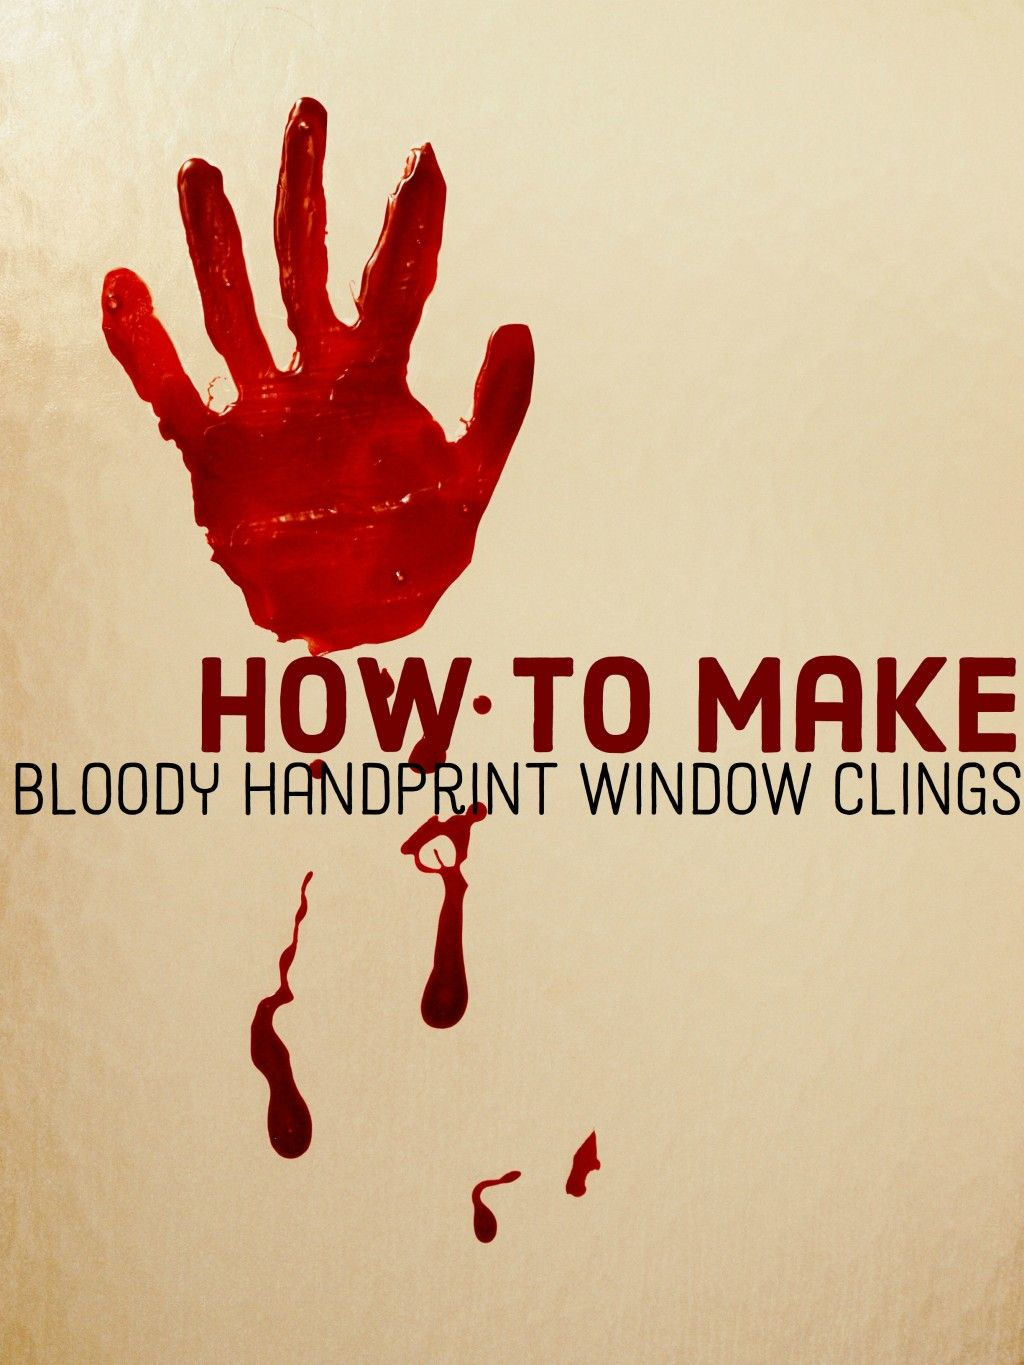 Do it yourself bloody handprint window clings.